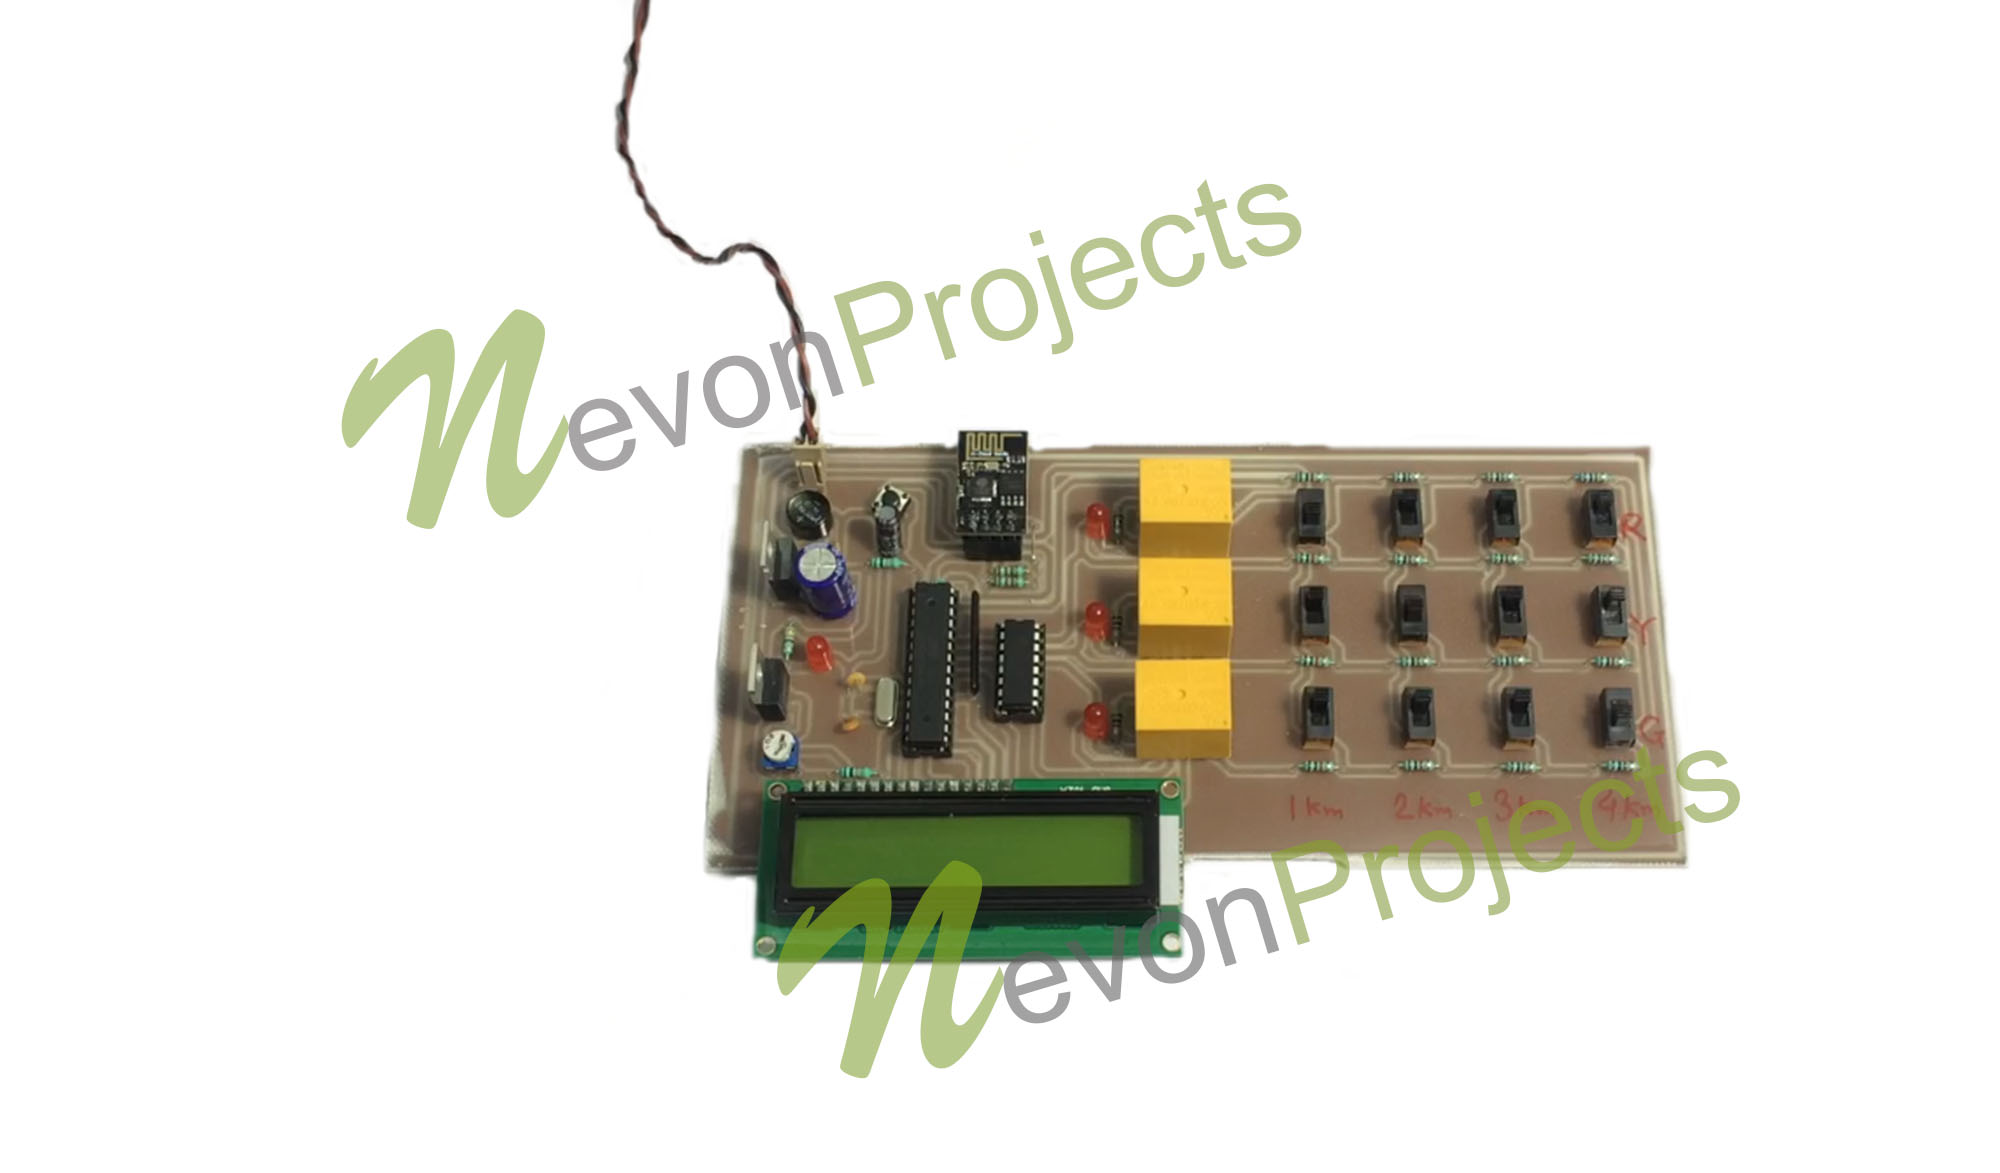 Iot Underground Cable Fault Detector Project Electronics Mini Projects On Design And Implementation Of Electronic Download Document Synopsis